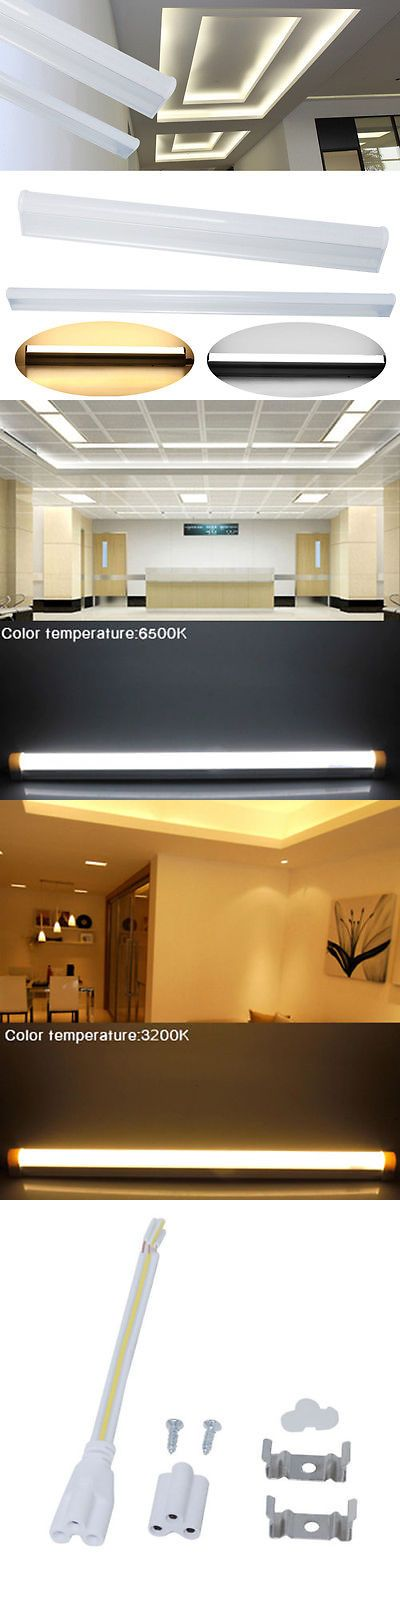 Light Bulbs 20706: 2 4 6 10X Integrated T5 5W 9W Smd Led Fluorescent Replacement Tube Light 1Ft 2Ft -> BUY IT NOW ONLY: $42.99 on eBay!